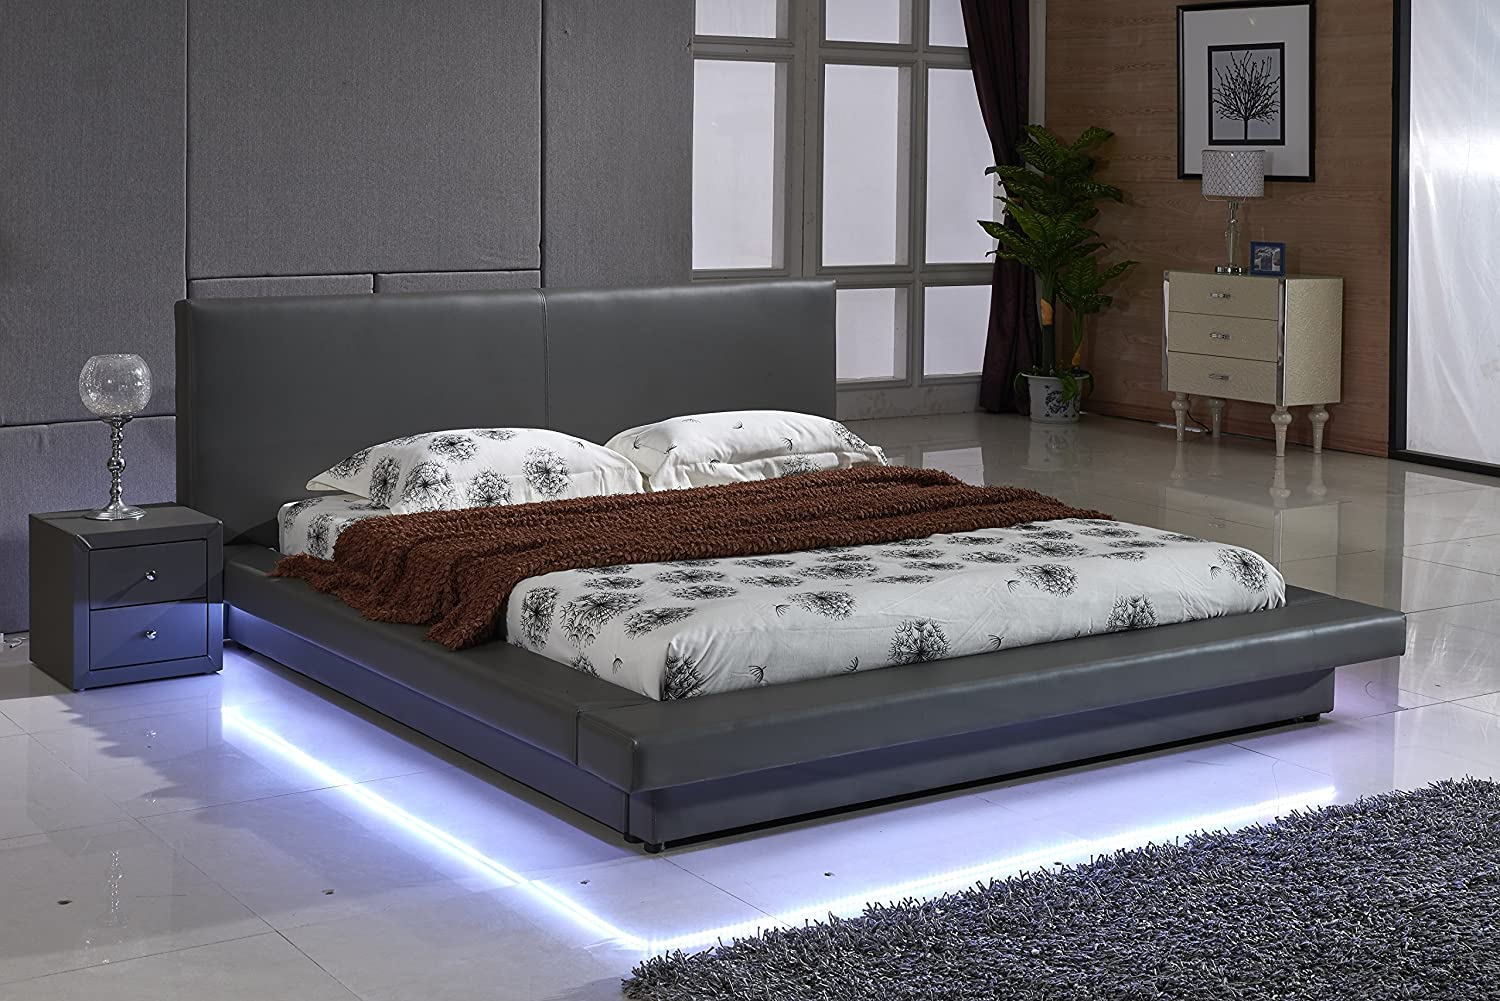 modern platform bed king size grey leather w led low profile bedroom furniture ebay. Black Bedroom Furniture Sets. Home Design Ideas